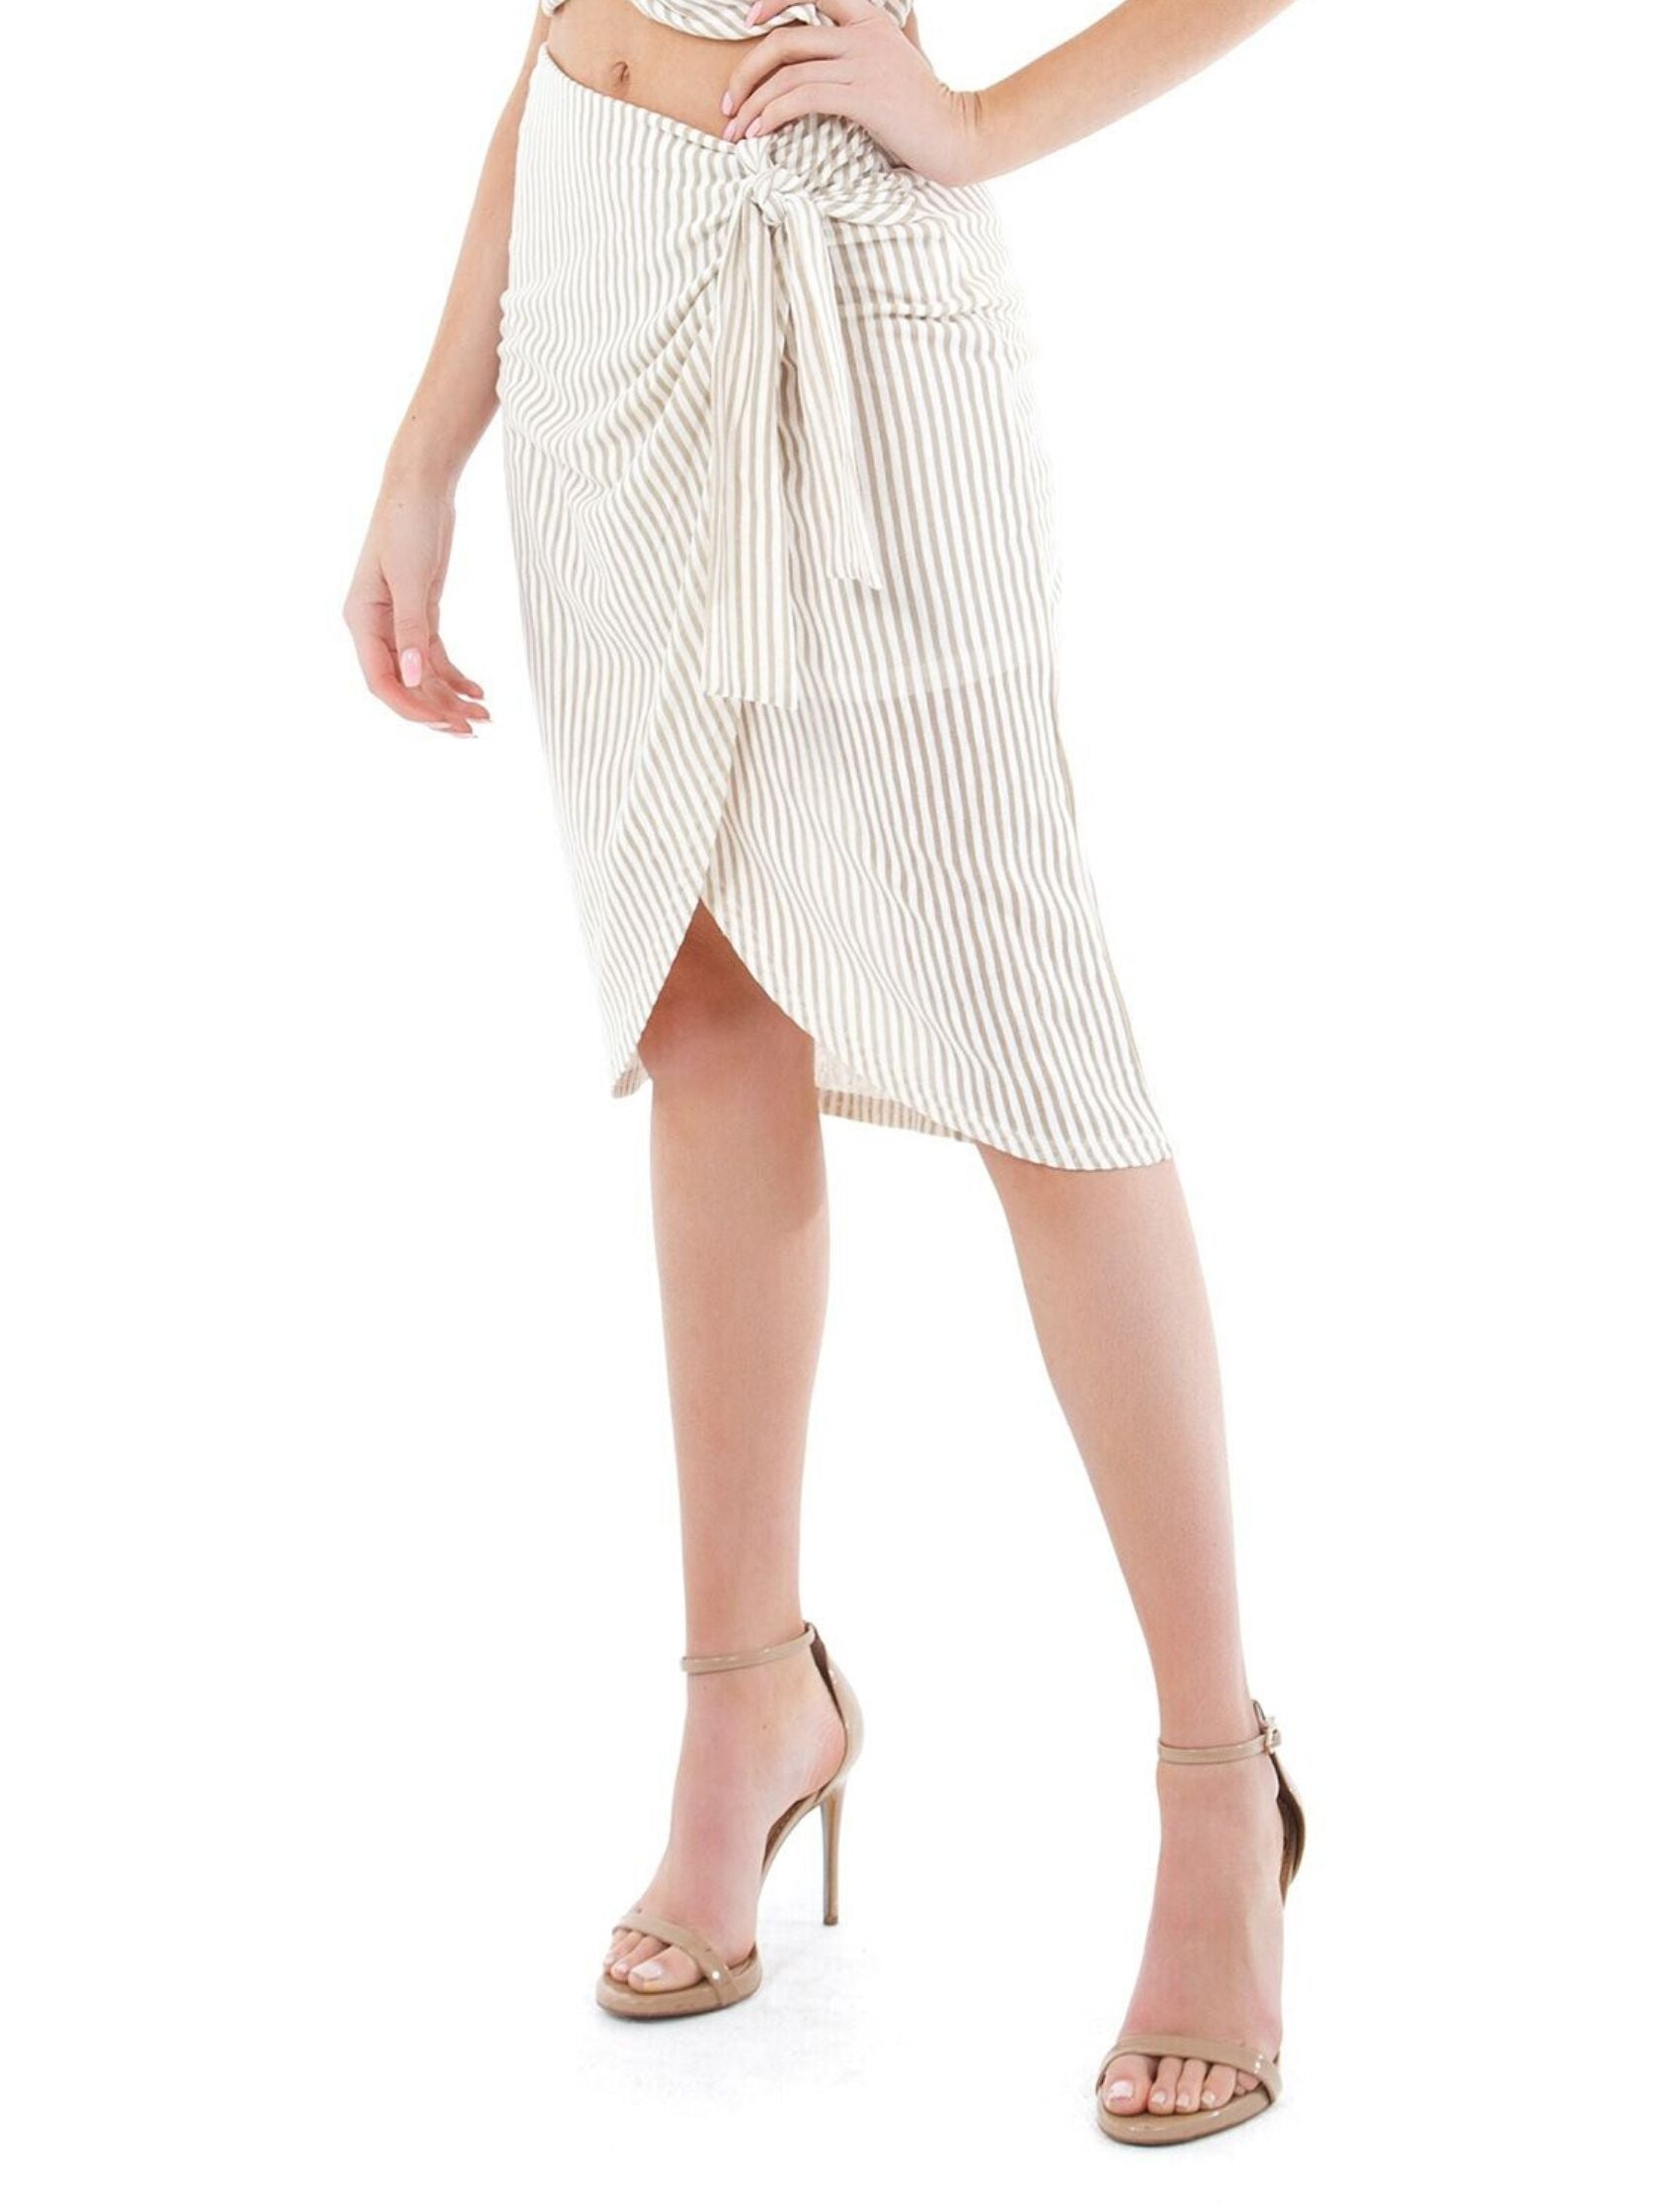 Women wearing a skirt rental from MINKPINK called Faux Wrap Midi Skirt